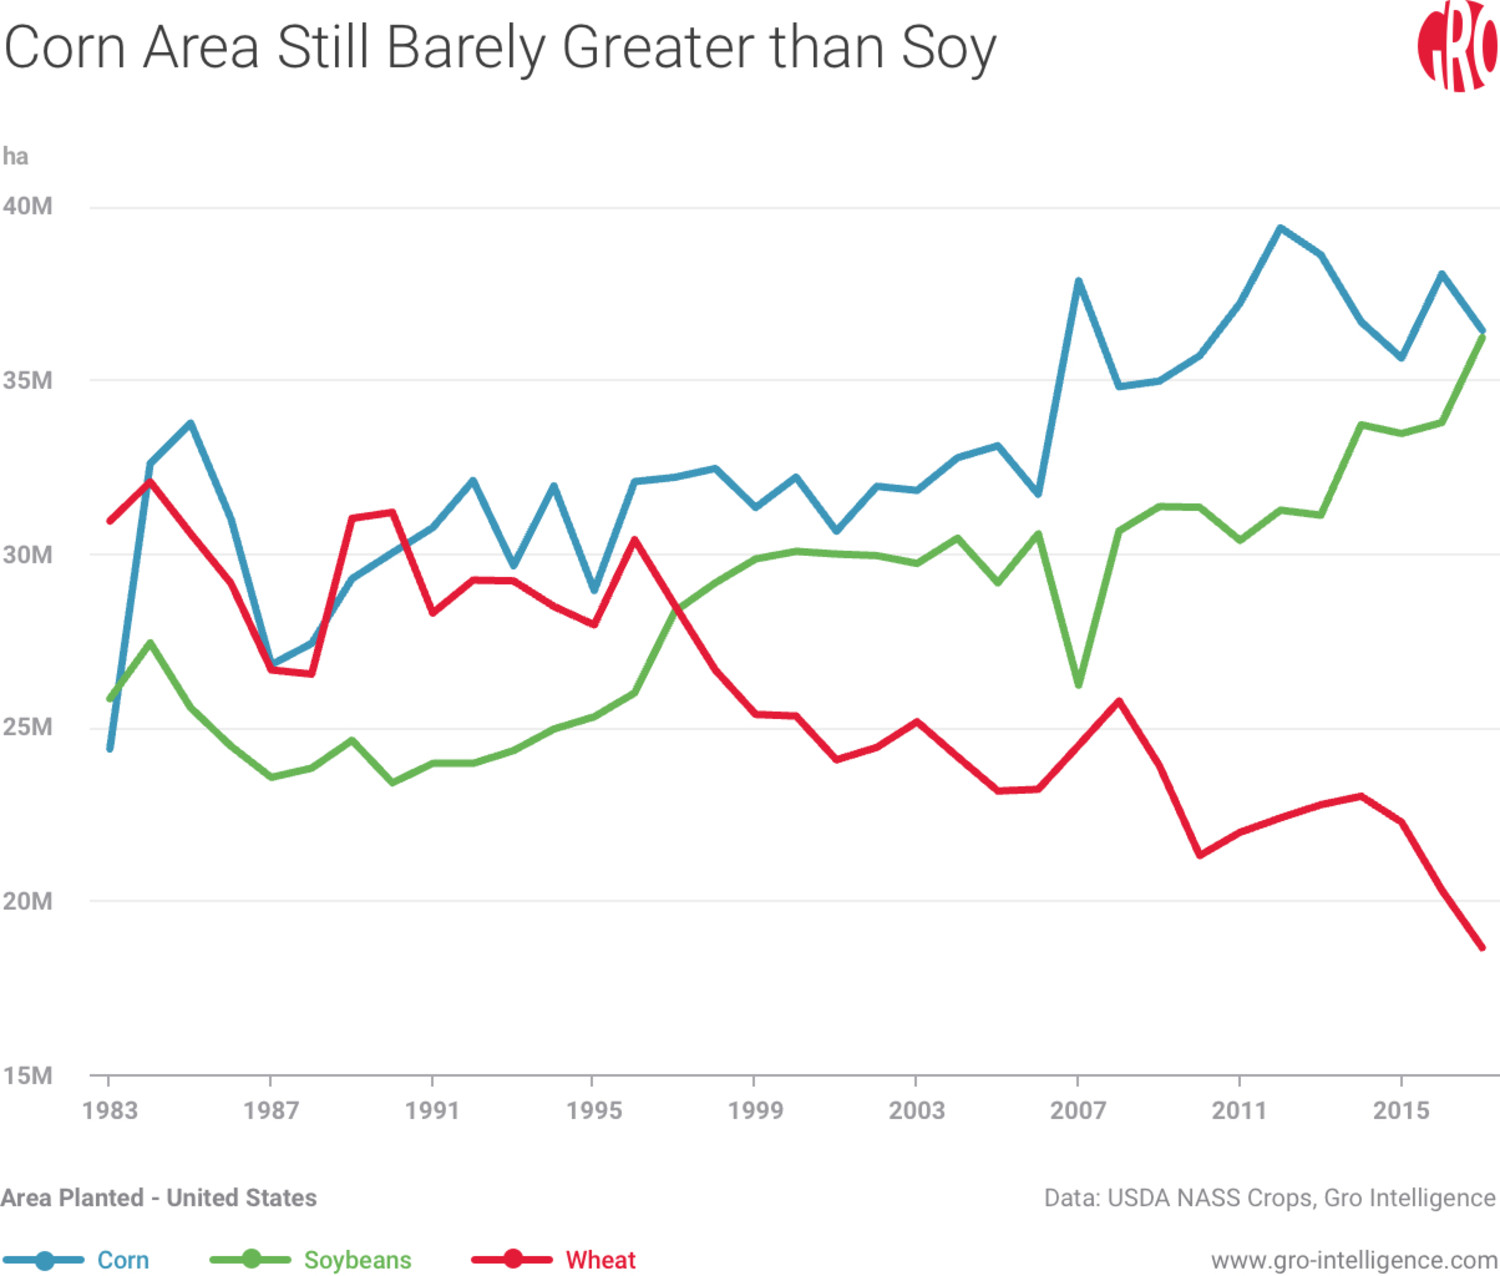 Corn Area Still Barely Greater Than Soy